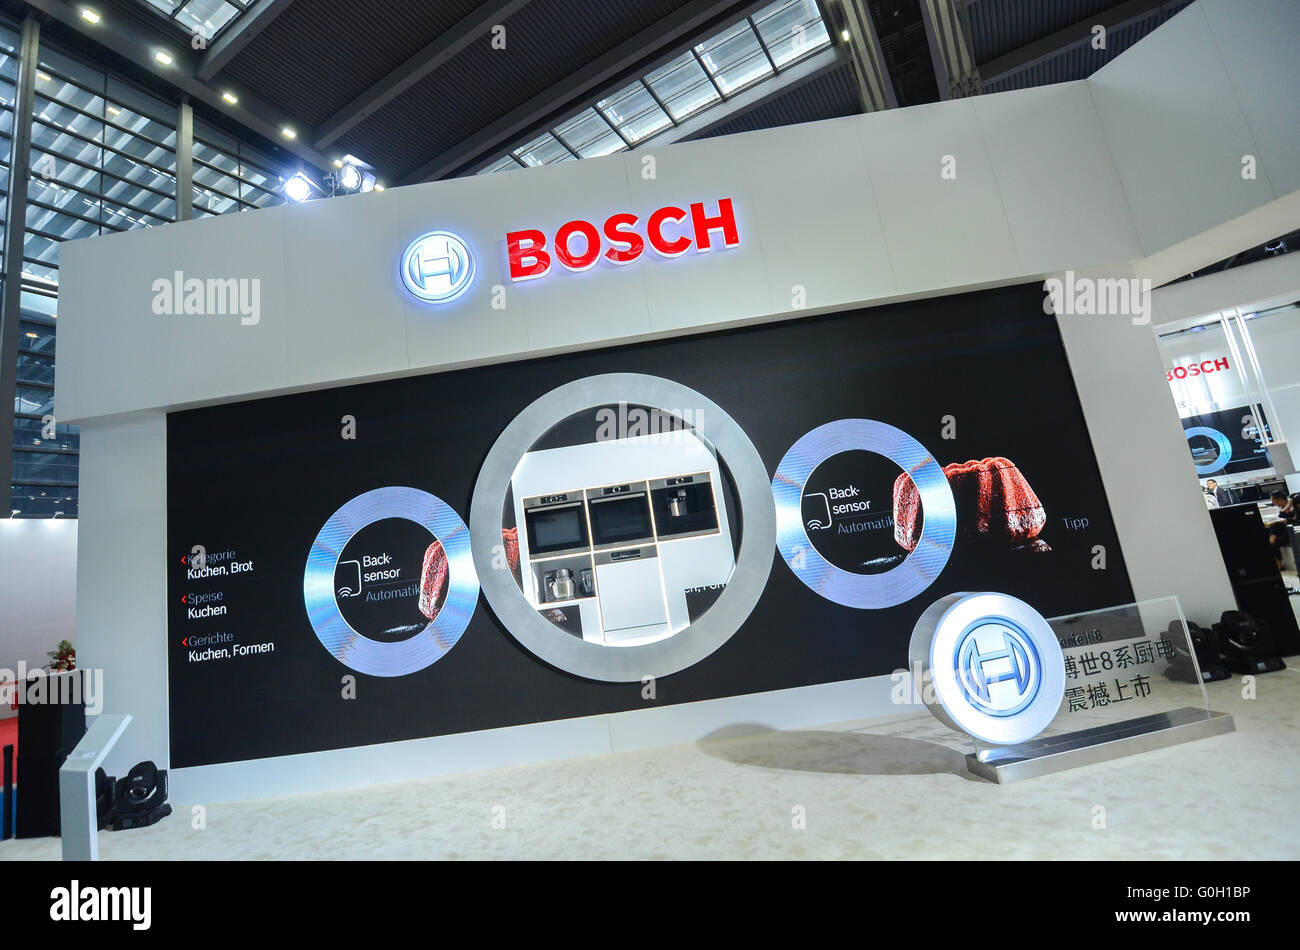 Bosch Sign Stock Photos & Bosch Sign Stock Images - Alamy